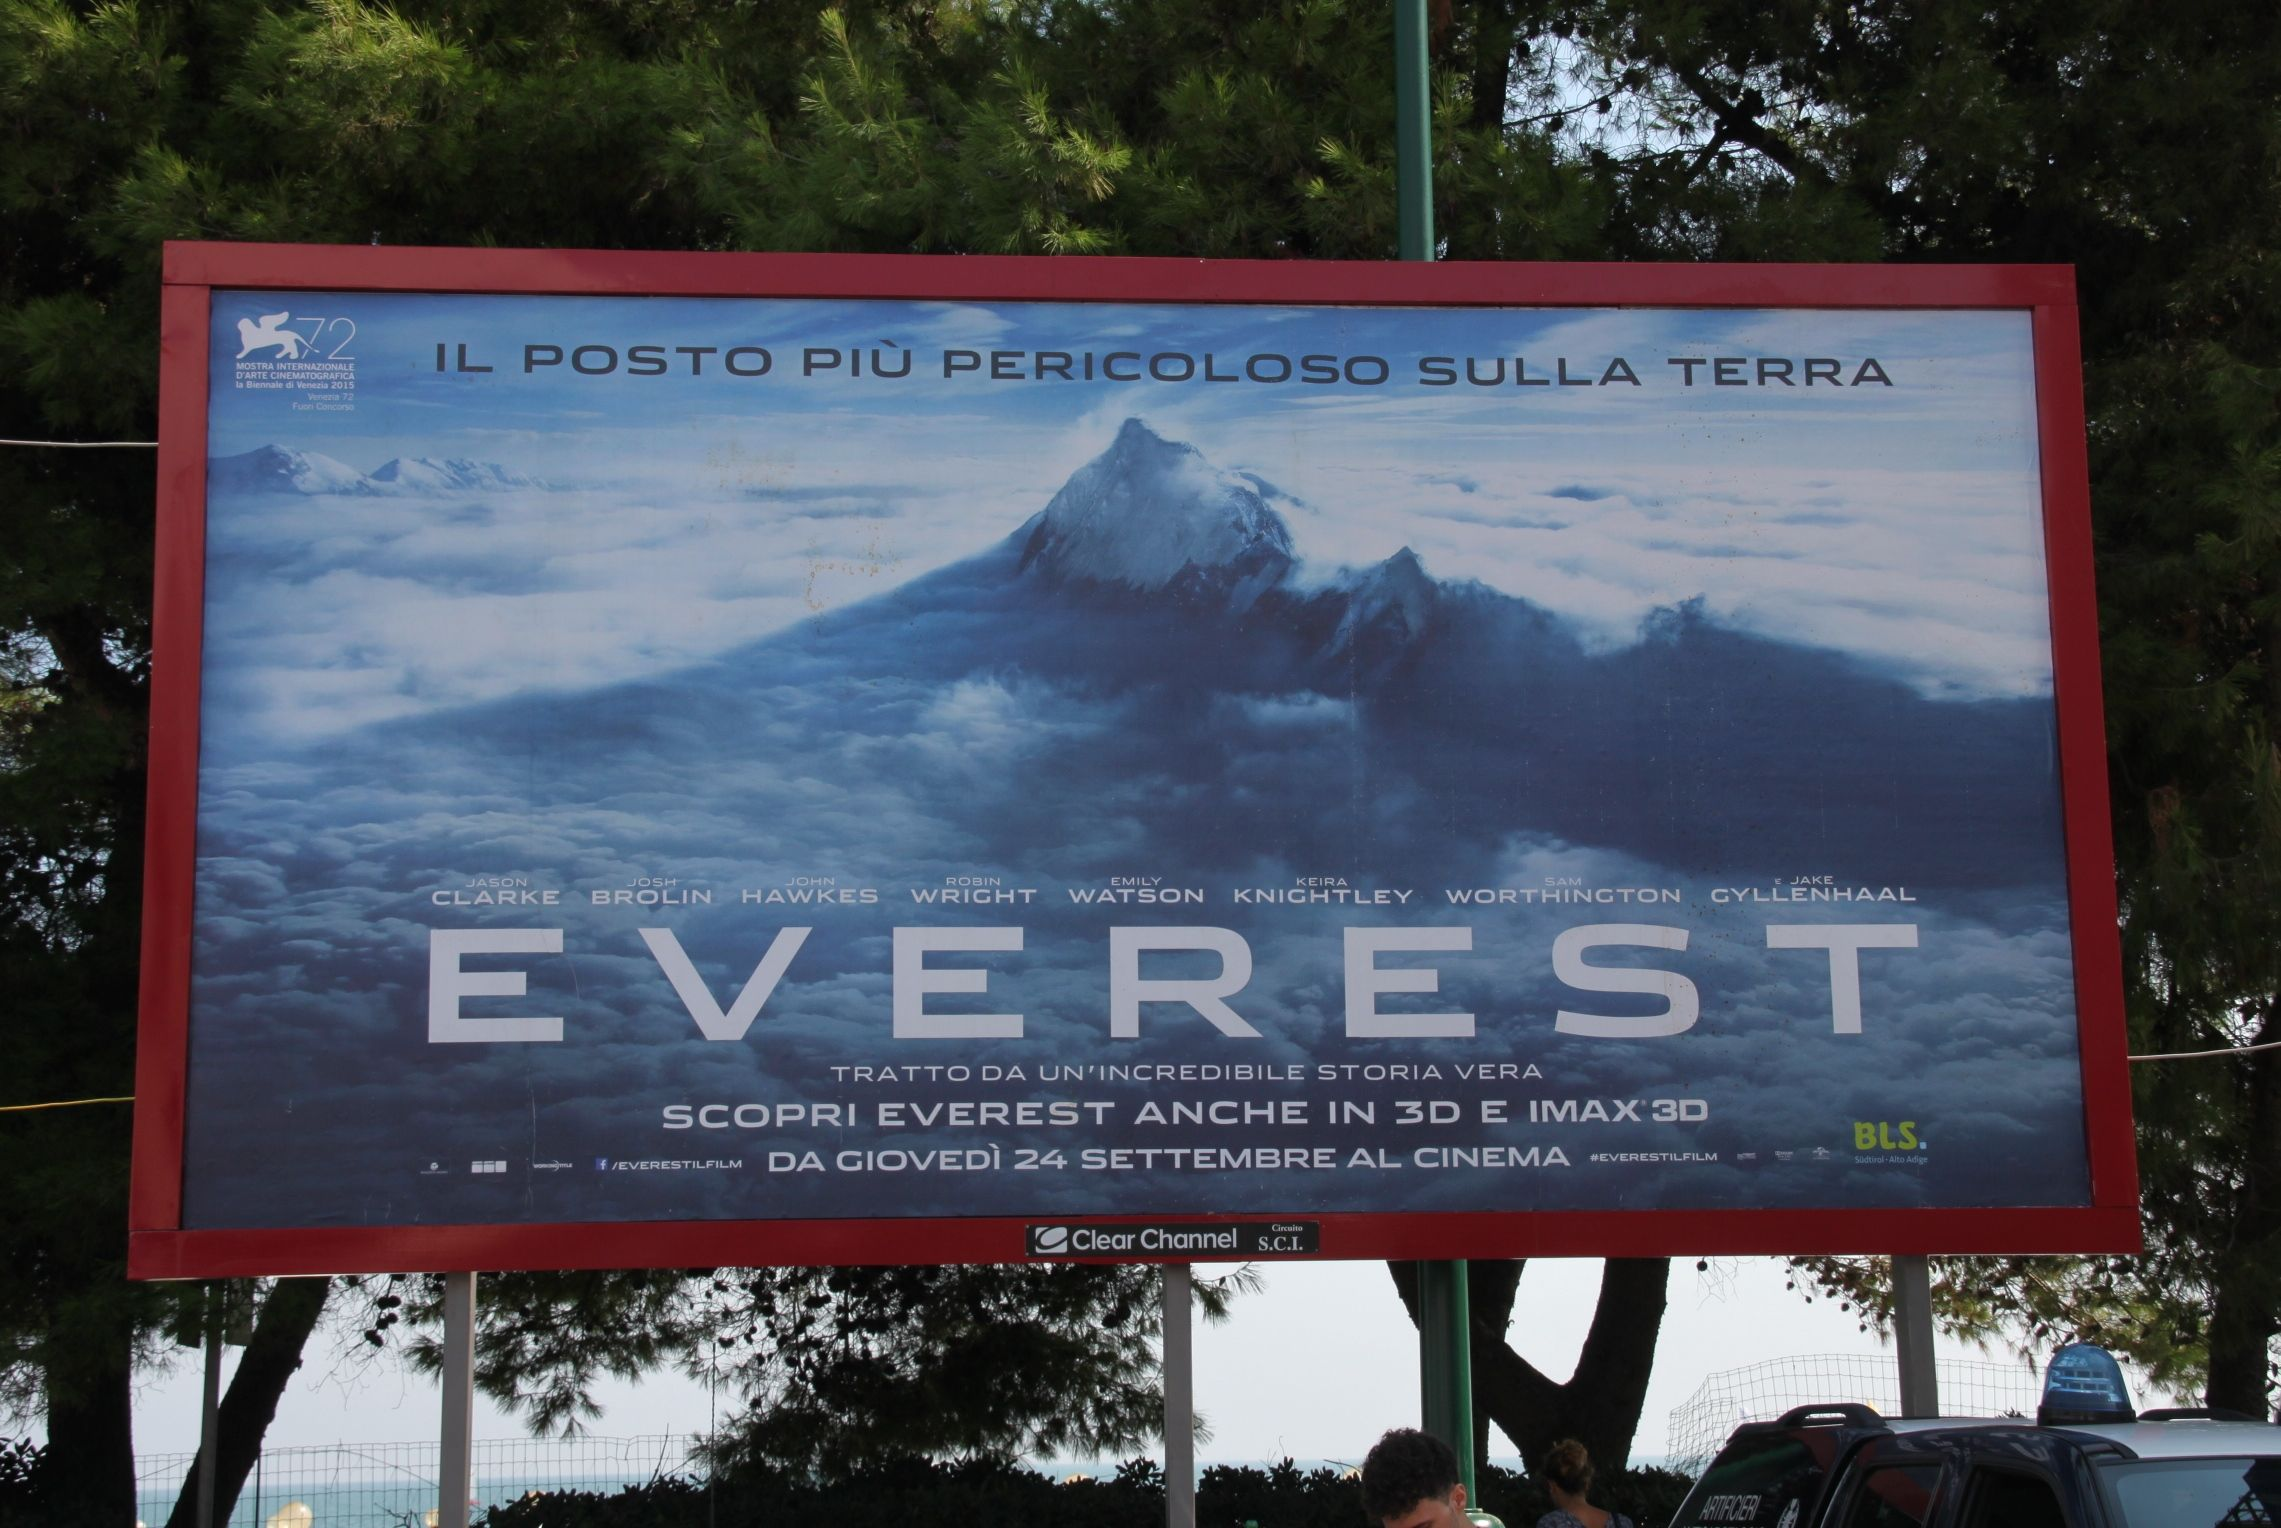 Everest starring Jake Gyllenhaal, Josh Brolin & Emily Watson opened the 72nd Venice Film Festival, 2015